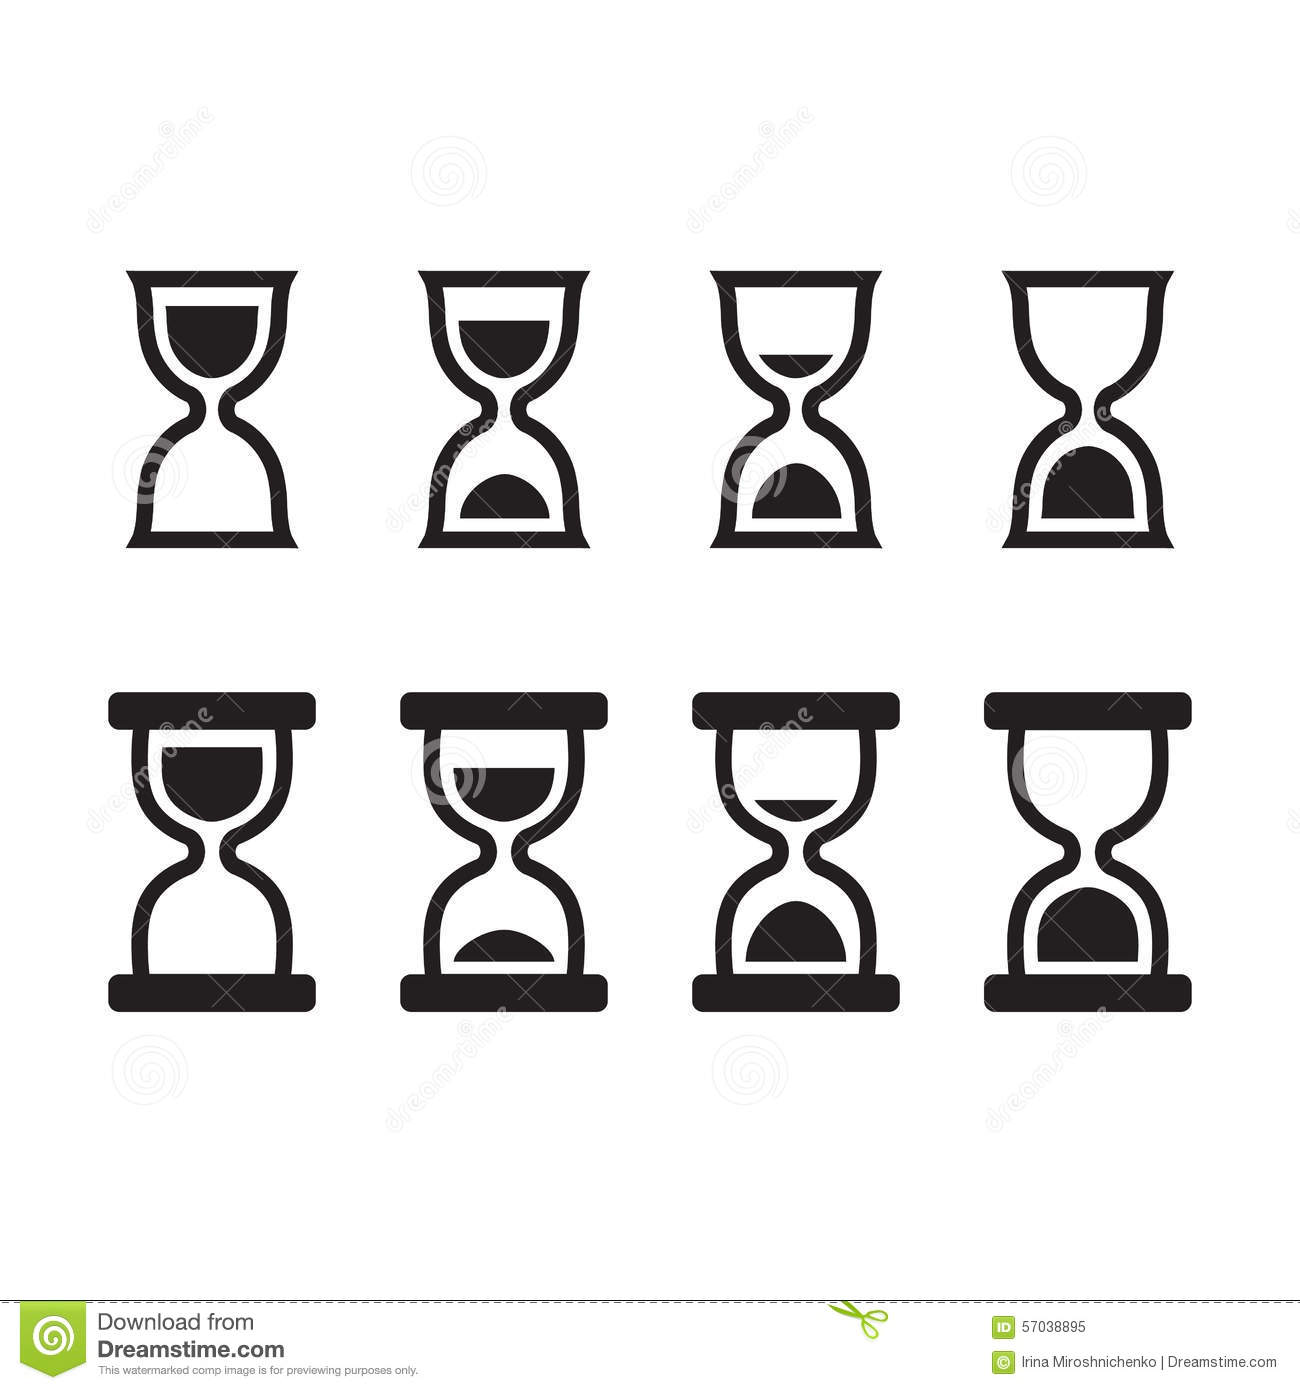 Set of hourglass icons in two styles, four states of sand position ...